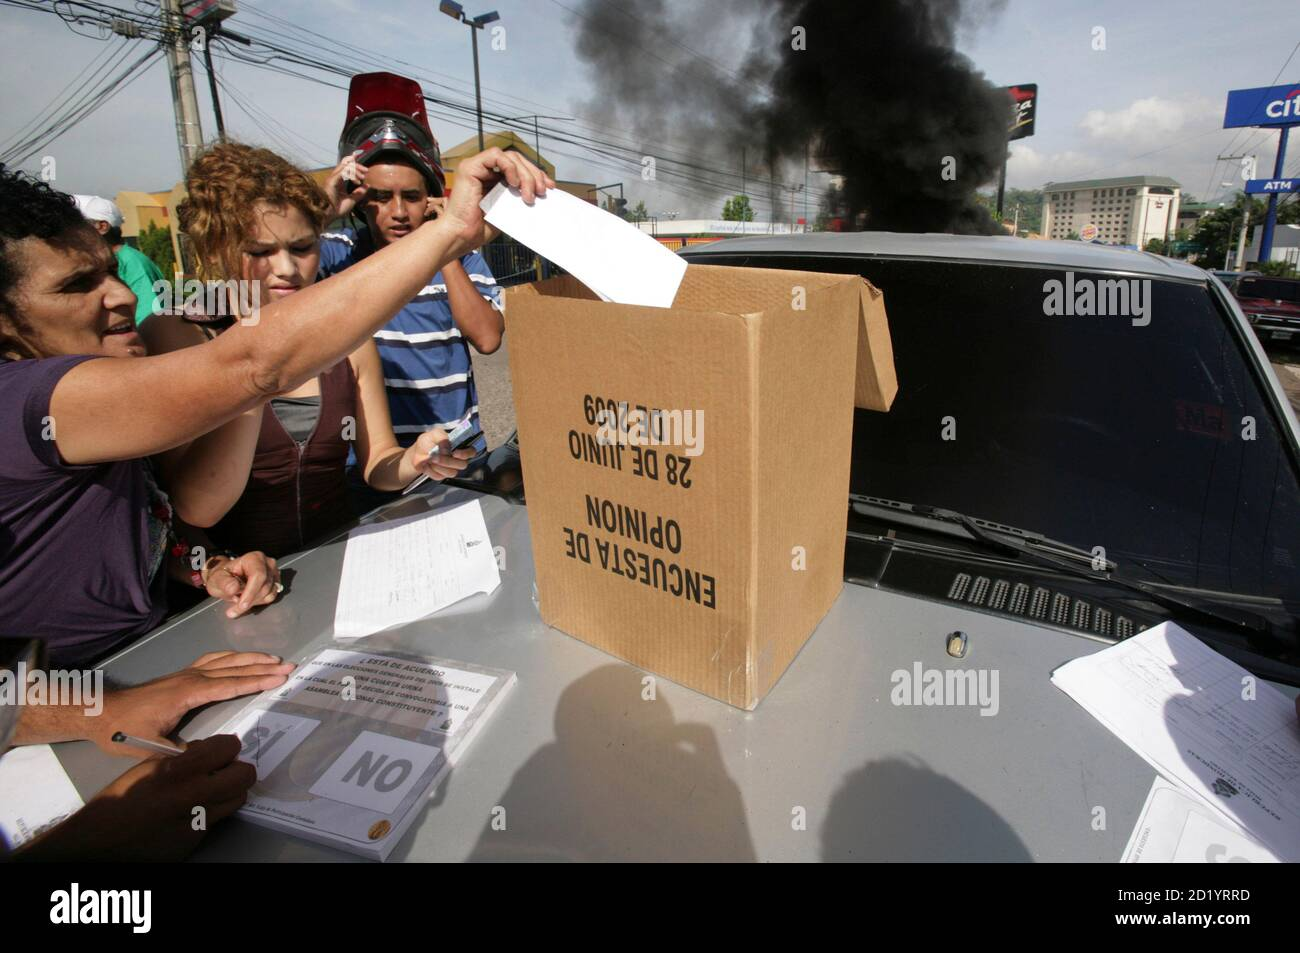 A woman casts a symbolic vote as a show of support for Honduras' President Manuel Zelaya on the streets near the presidential residency in Tegucigalpa June 28, 2009. Witnesses said Zelaya was detained at home by troops in a constitutional crisis over his attempt to win re-election. CNN's Spanish-language channel later quoted Costa Rican officials as saying he was in Costa Rica and seeking political asylum. An unofficial referendum on allowing presidents to serve more than a single four-year term was originally supposed to take place on Sunday. REUTERS/Oswaldo Rivas (HONDURAS POLITICS CONFLICT  Stock Photo